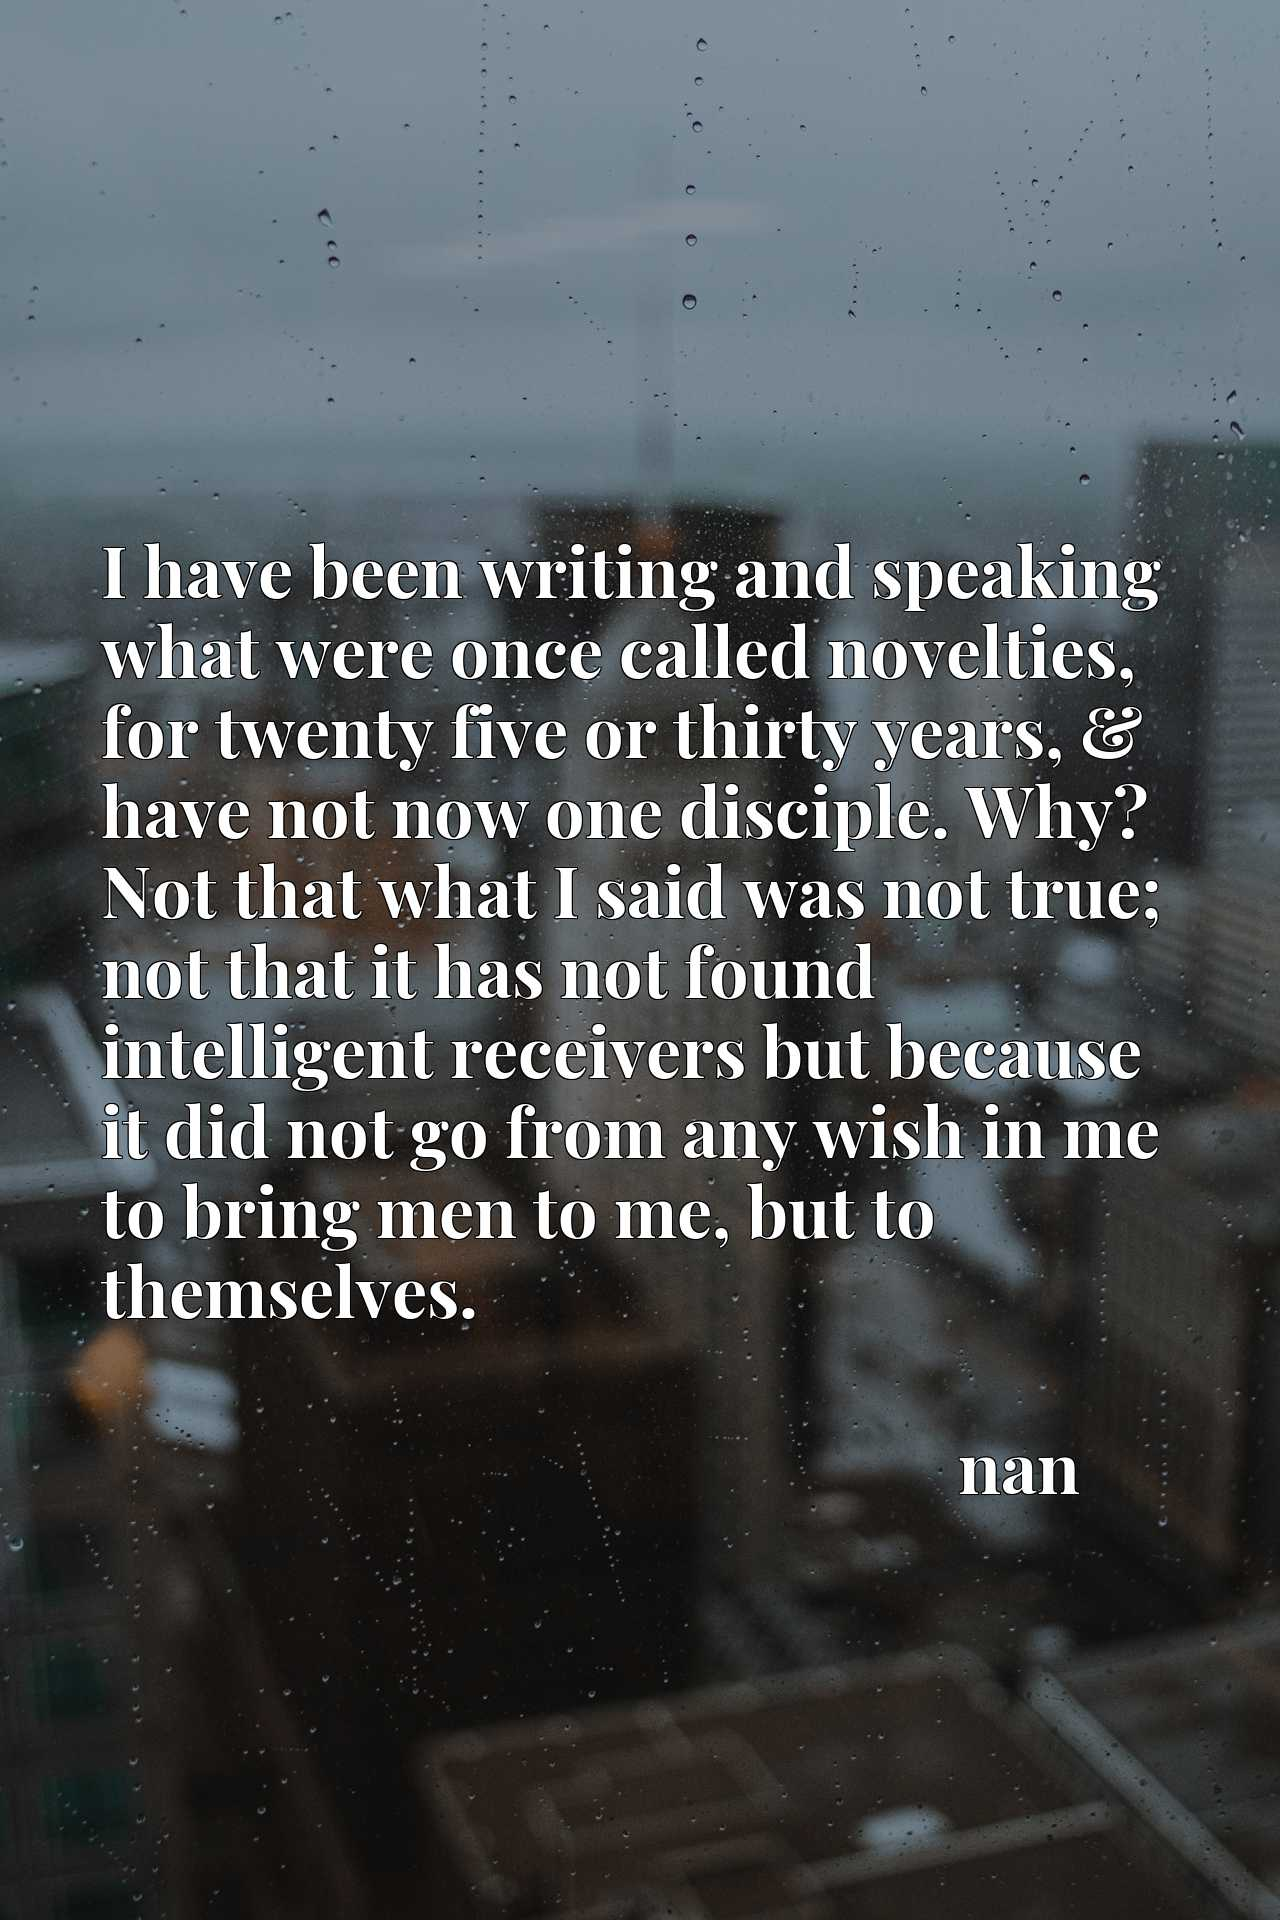 I have been writing and speaking what were once called novelties, for twenty five or thirty years, & have not now one disciple. Why? Not that what I said was not true; not that it has not found intelligent receivers but because it did not go from any wish in me to bring men to me, but to themselves.